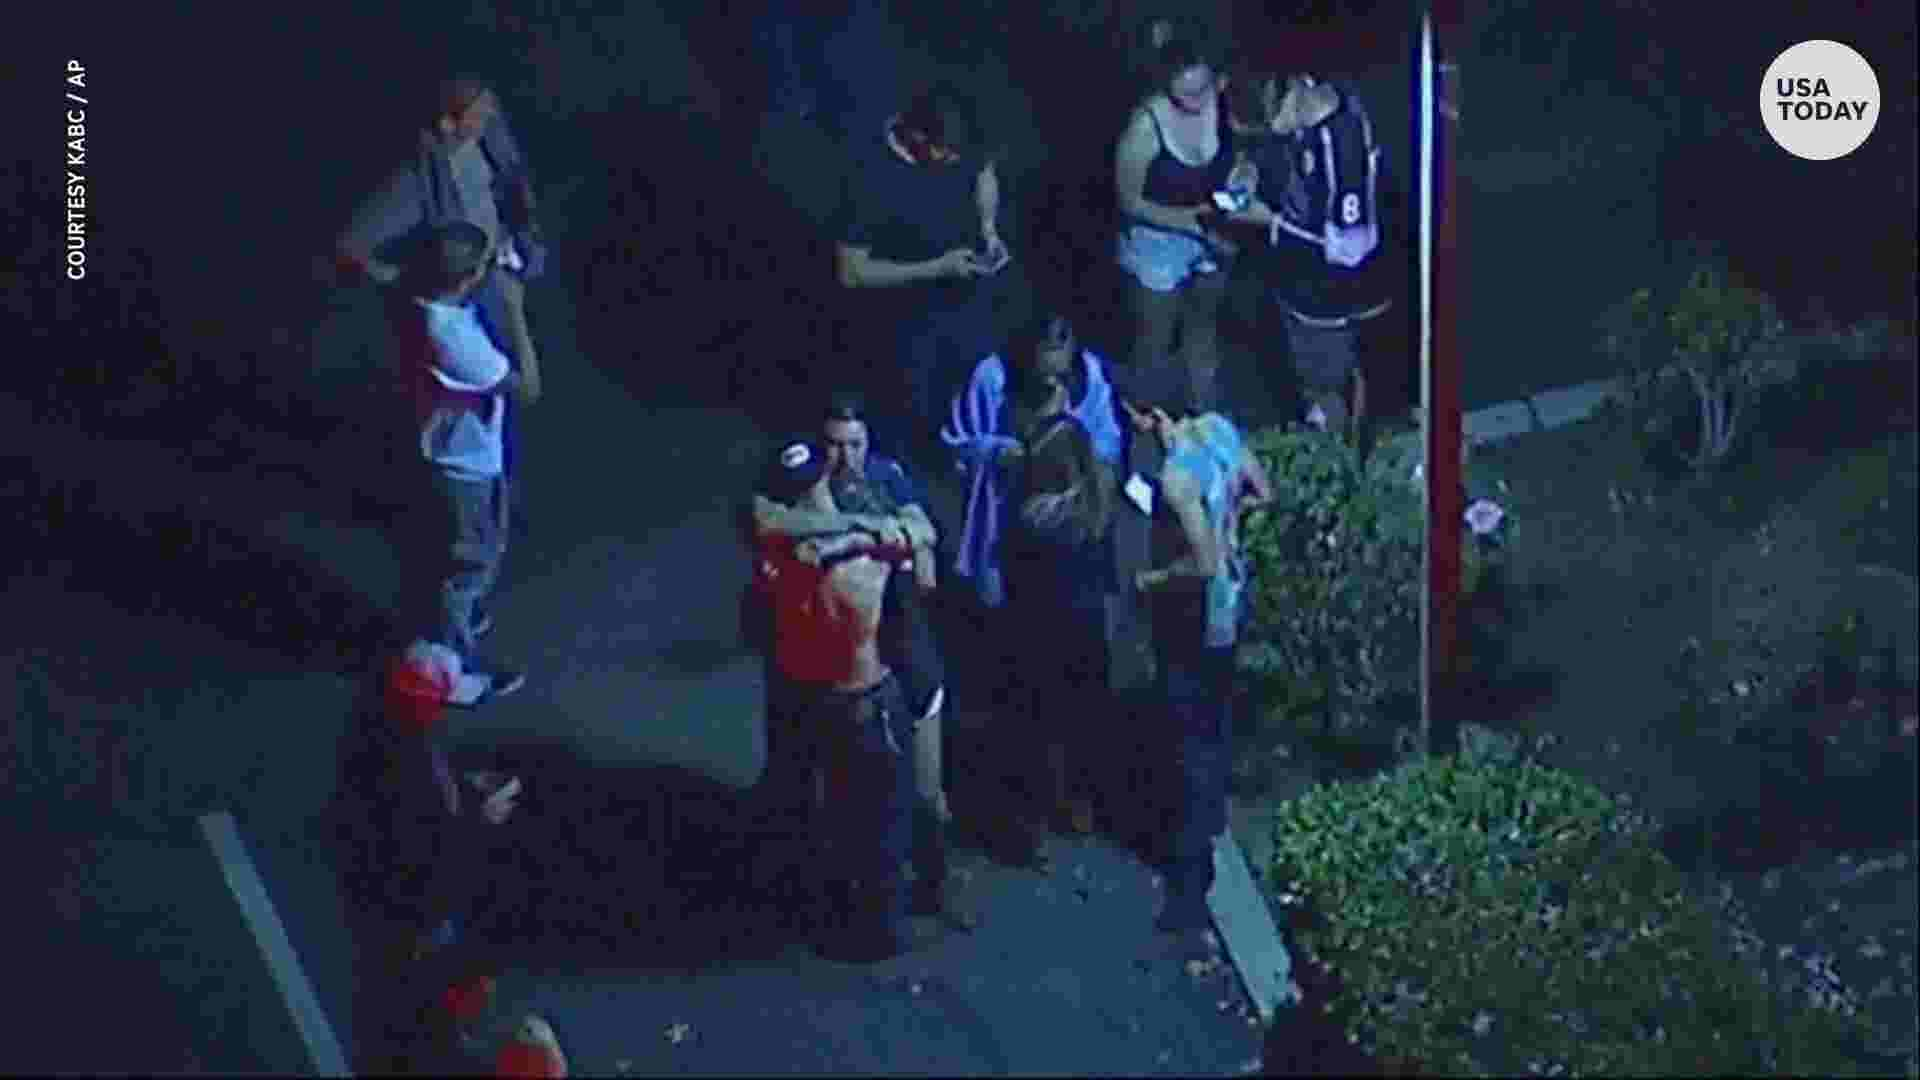 Thousand Oaks nightclub shooting: 12 dead, including a police sergeant